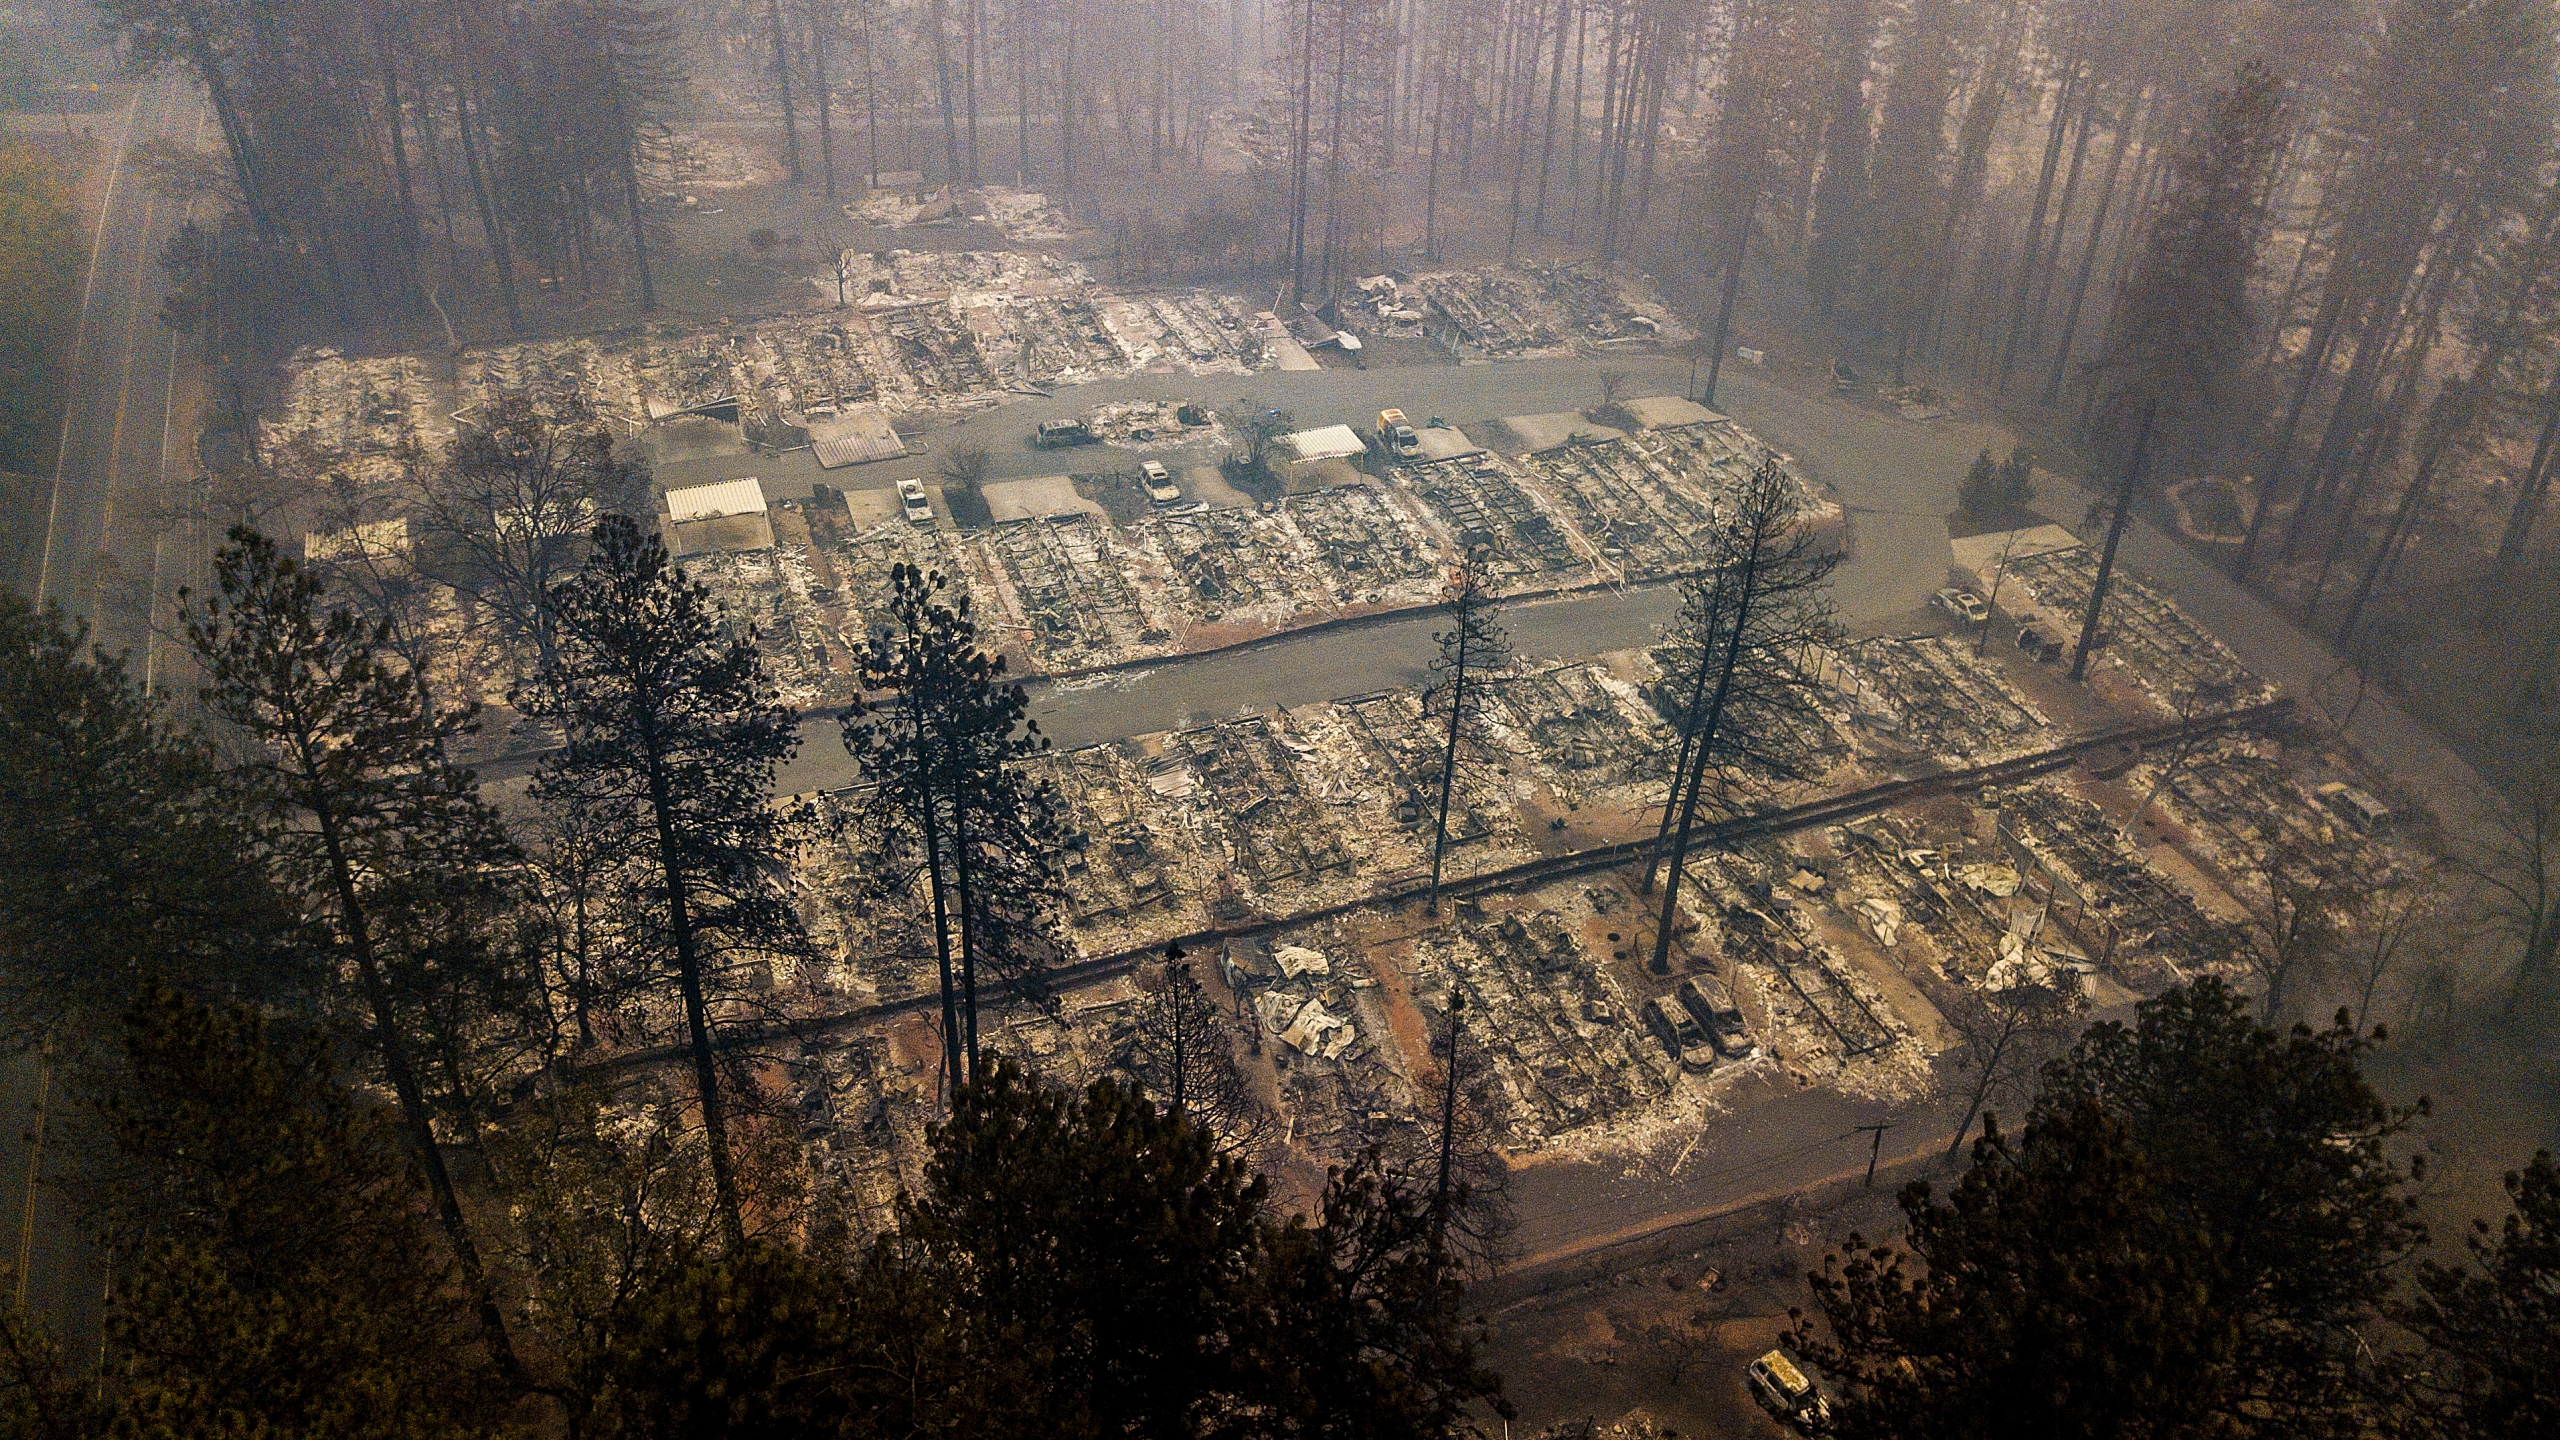 Northern_California_Wildfire_98277-159532.jpg11988167